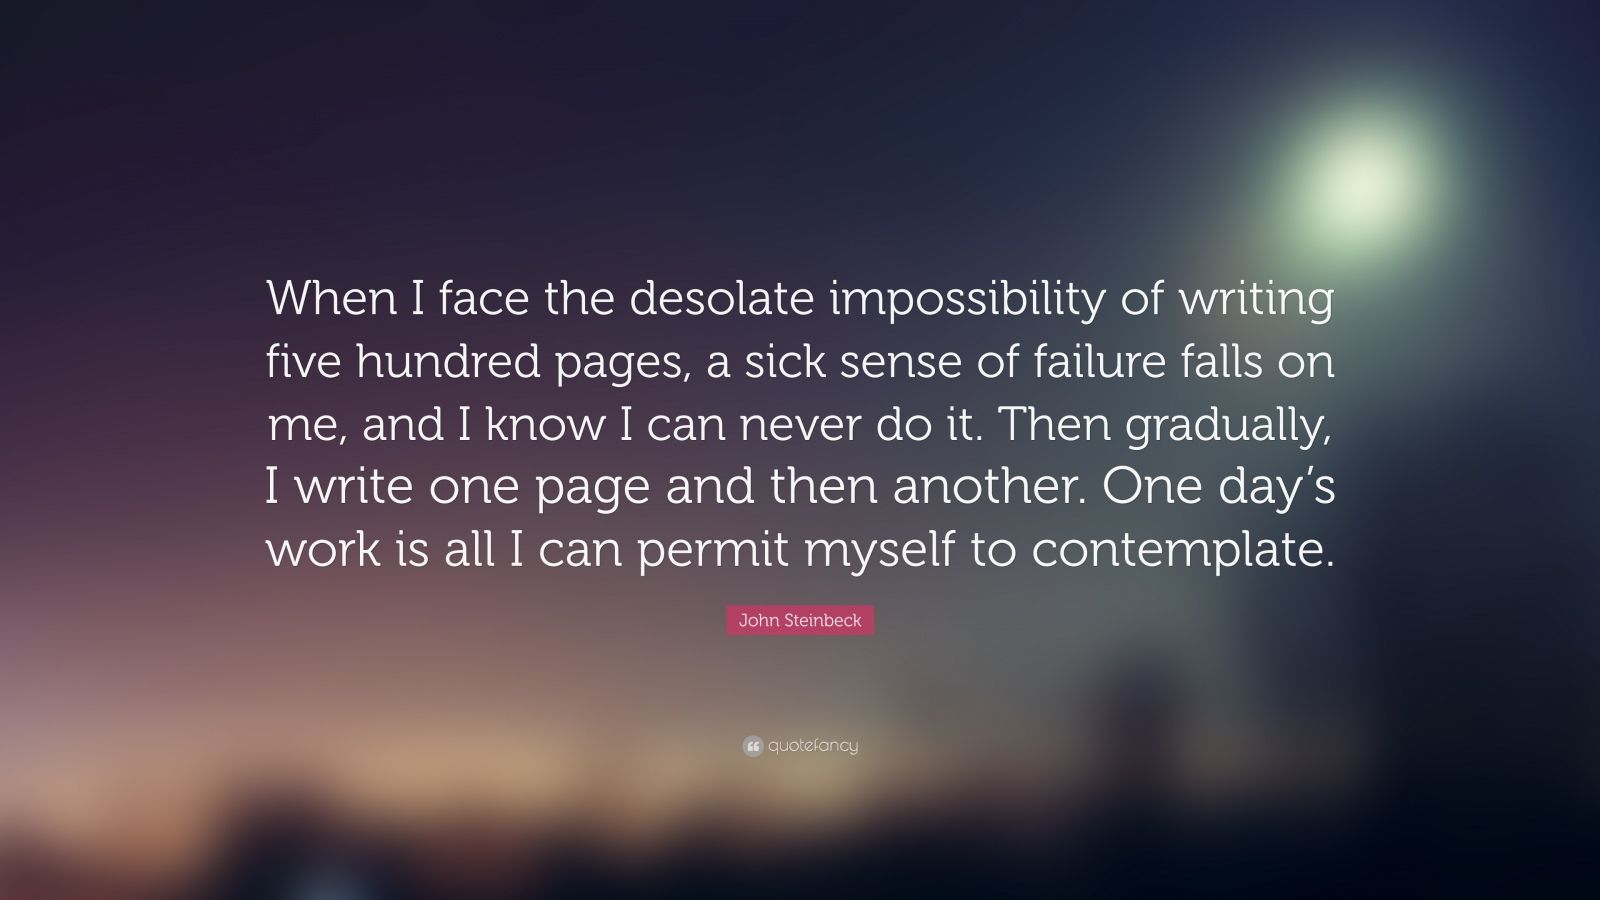 """John Steinbeck Quote: """"When I face the desolate impossibility of writing five hundred pages, a sick sense of failure falls on me, and I know I can never do it. Then gradually, I write one page and then another. One day's work is all I can permit myself to contemplate."""""""